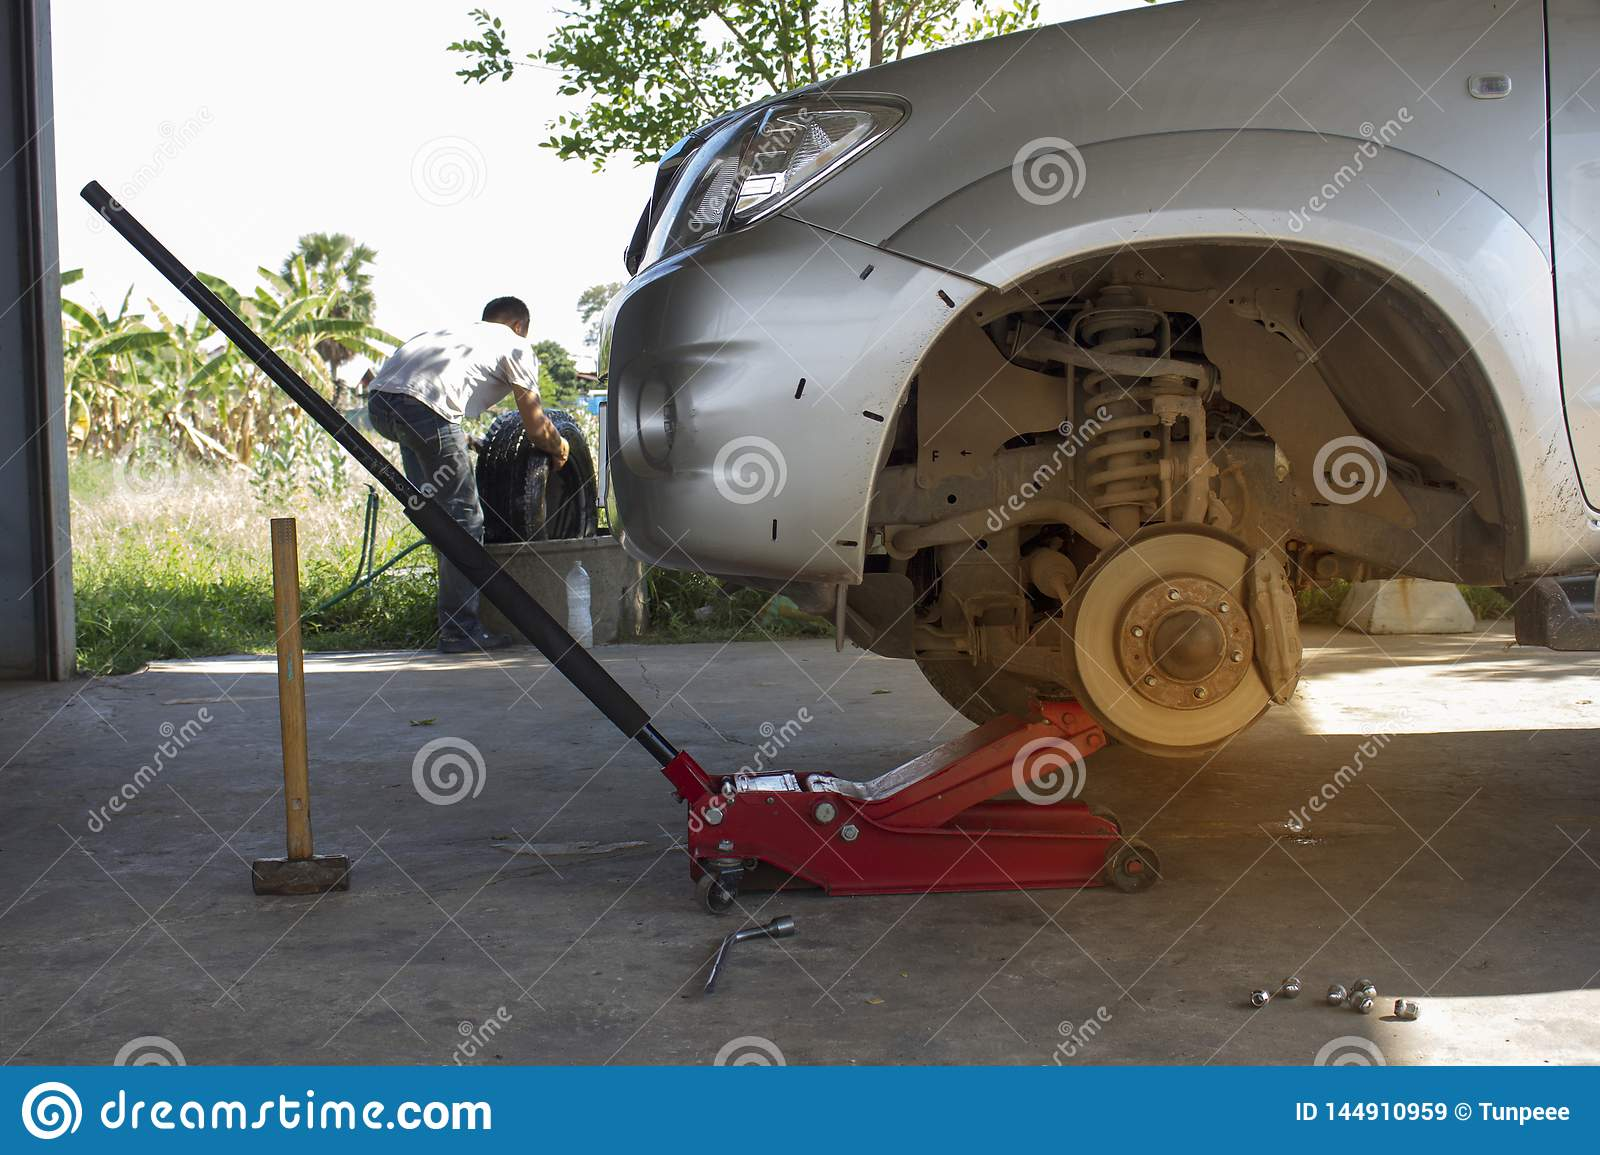 The mechanic is removing the pickup truck tires using the red jack